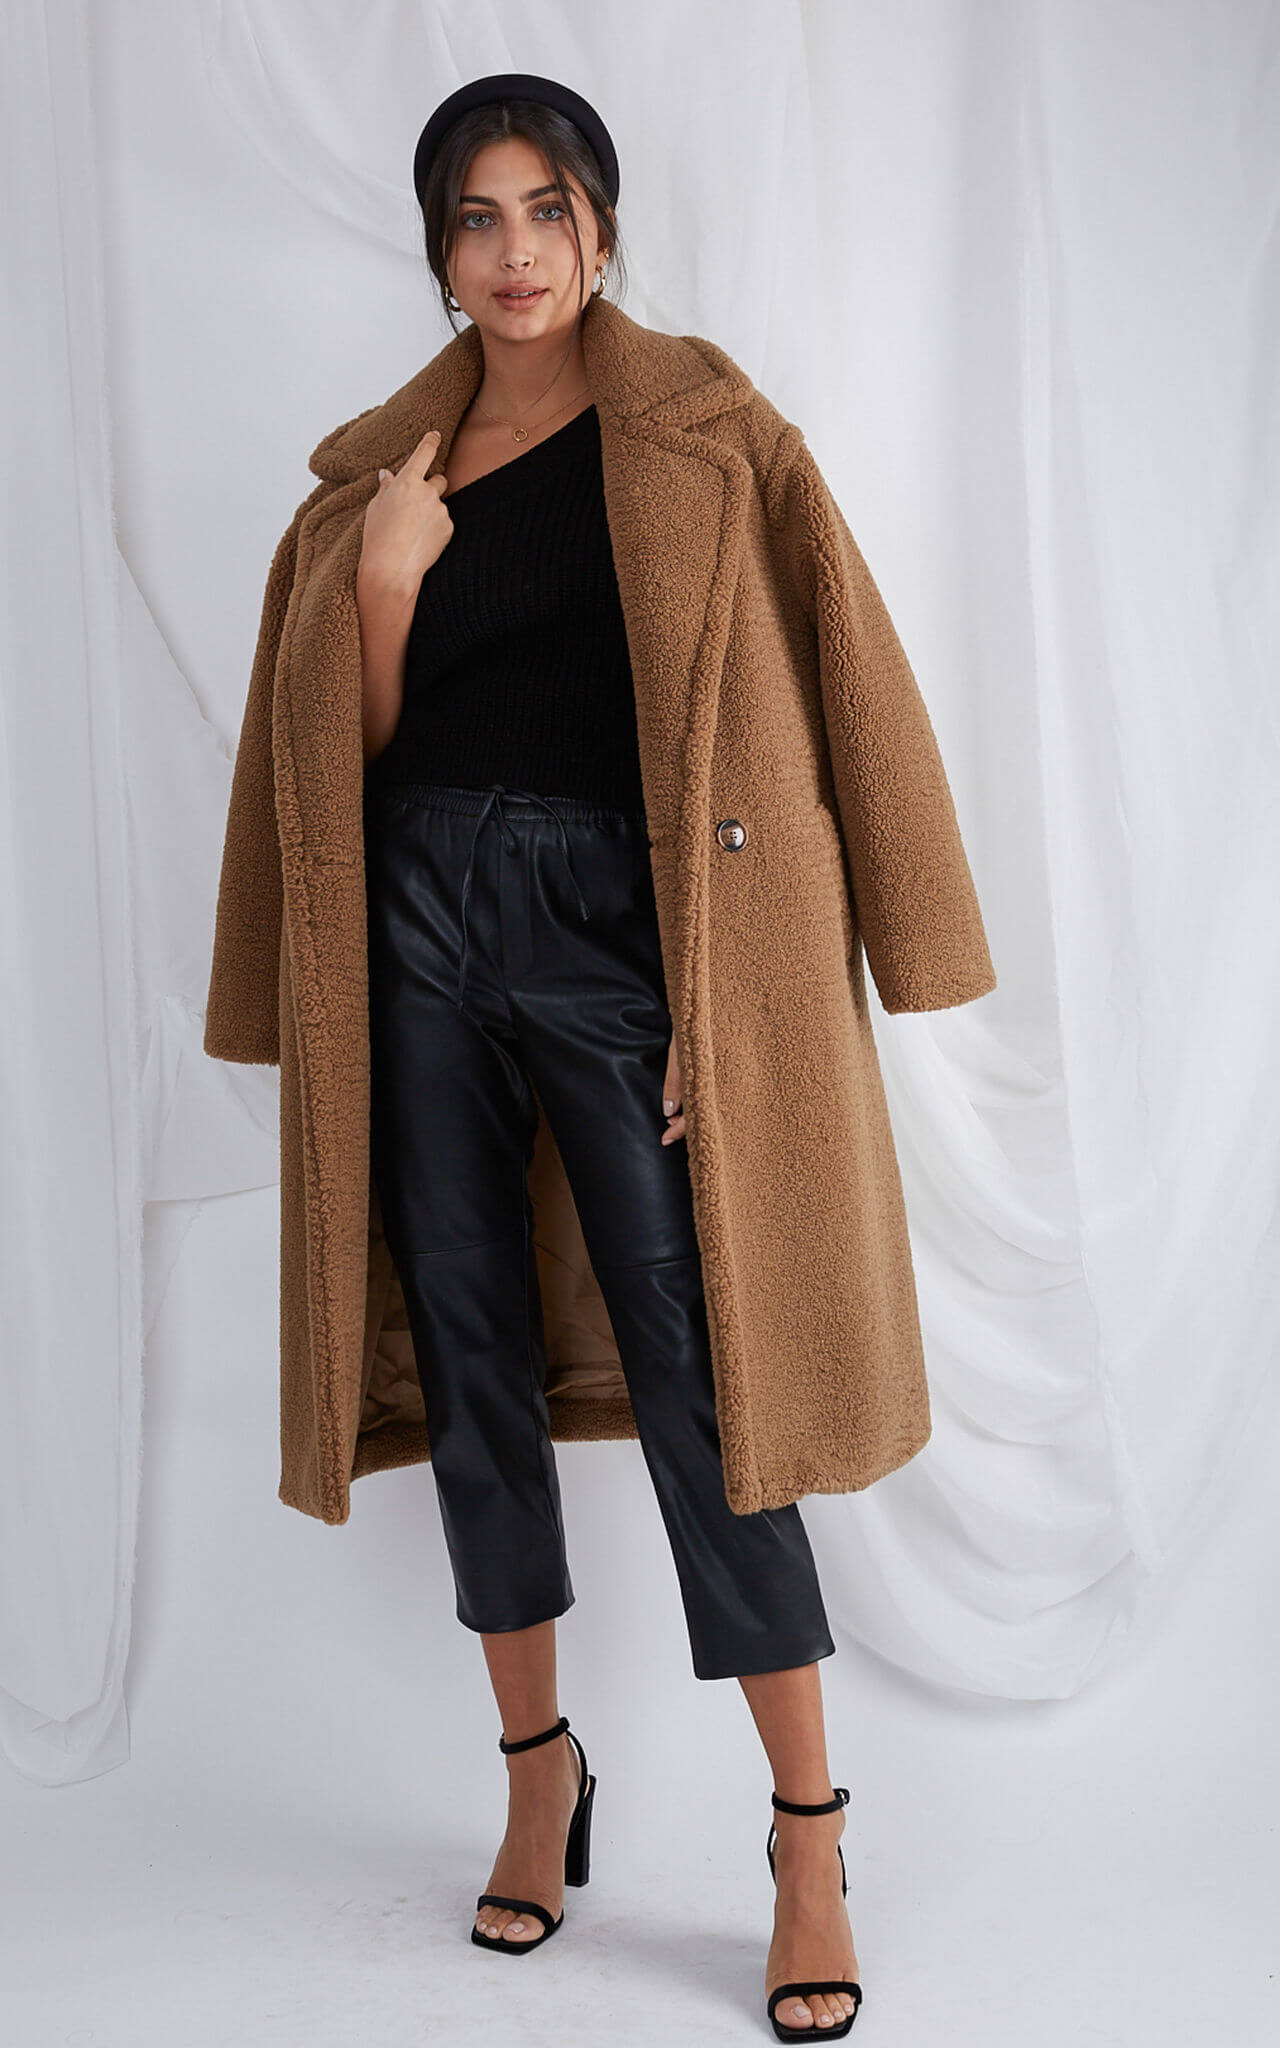 Model wears brown teddy coat over shoulders with black top and jeans